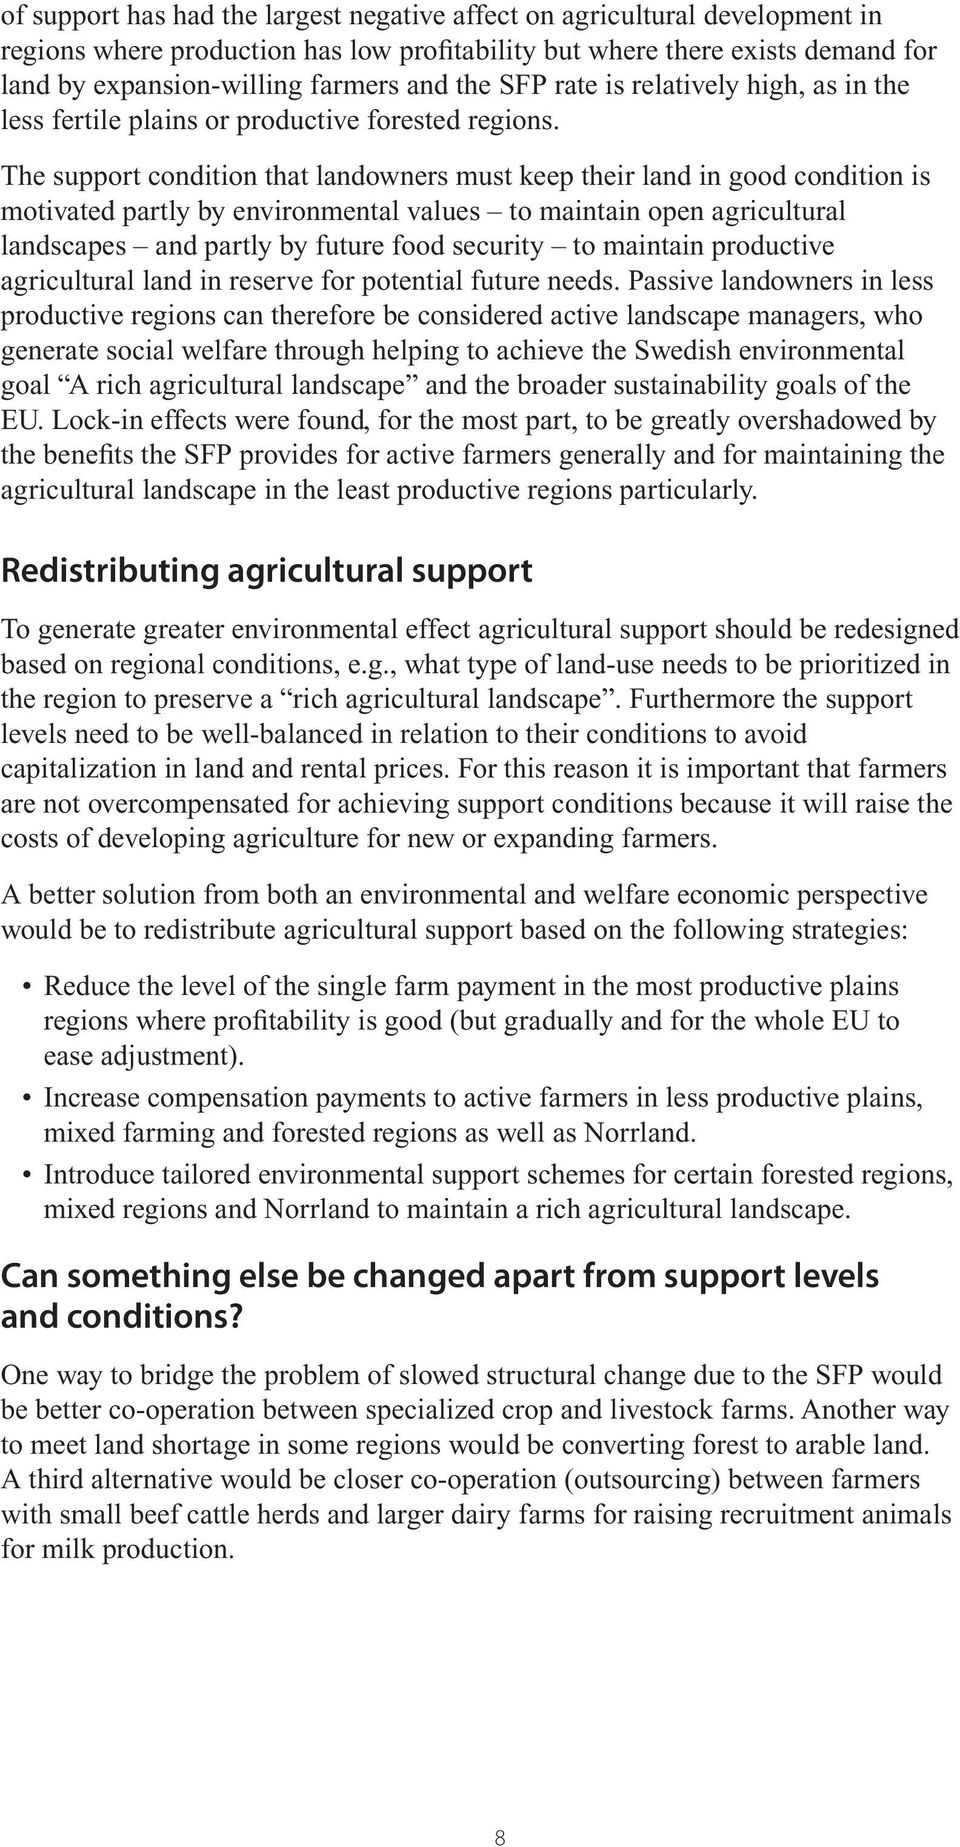 The support condition that landowners must keep their land in good condition is motivated partly by environmental values to maintain open agricultural landscapes and partly by future food security to